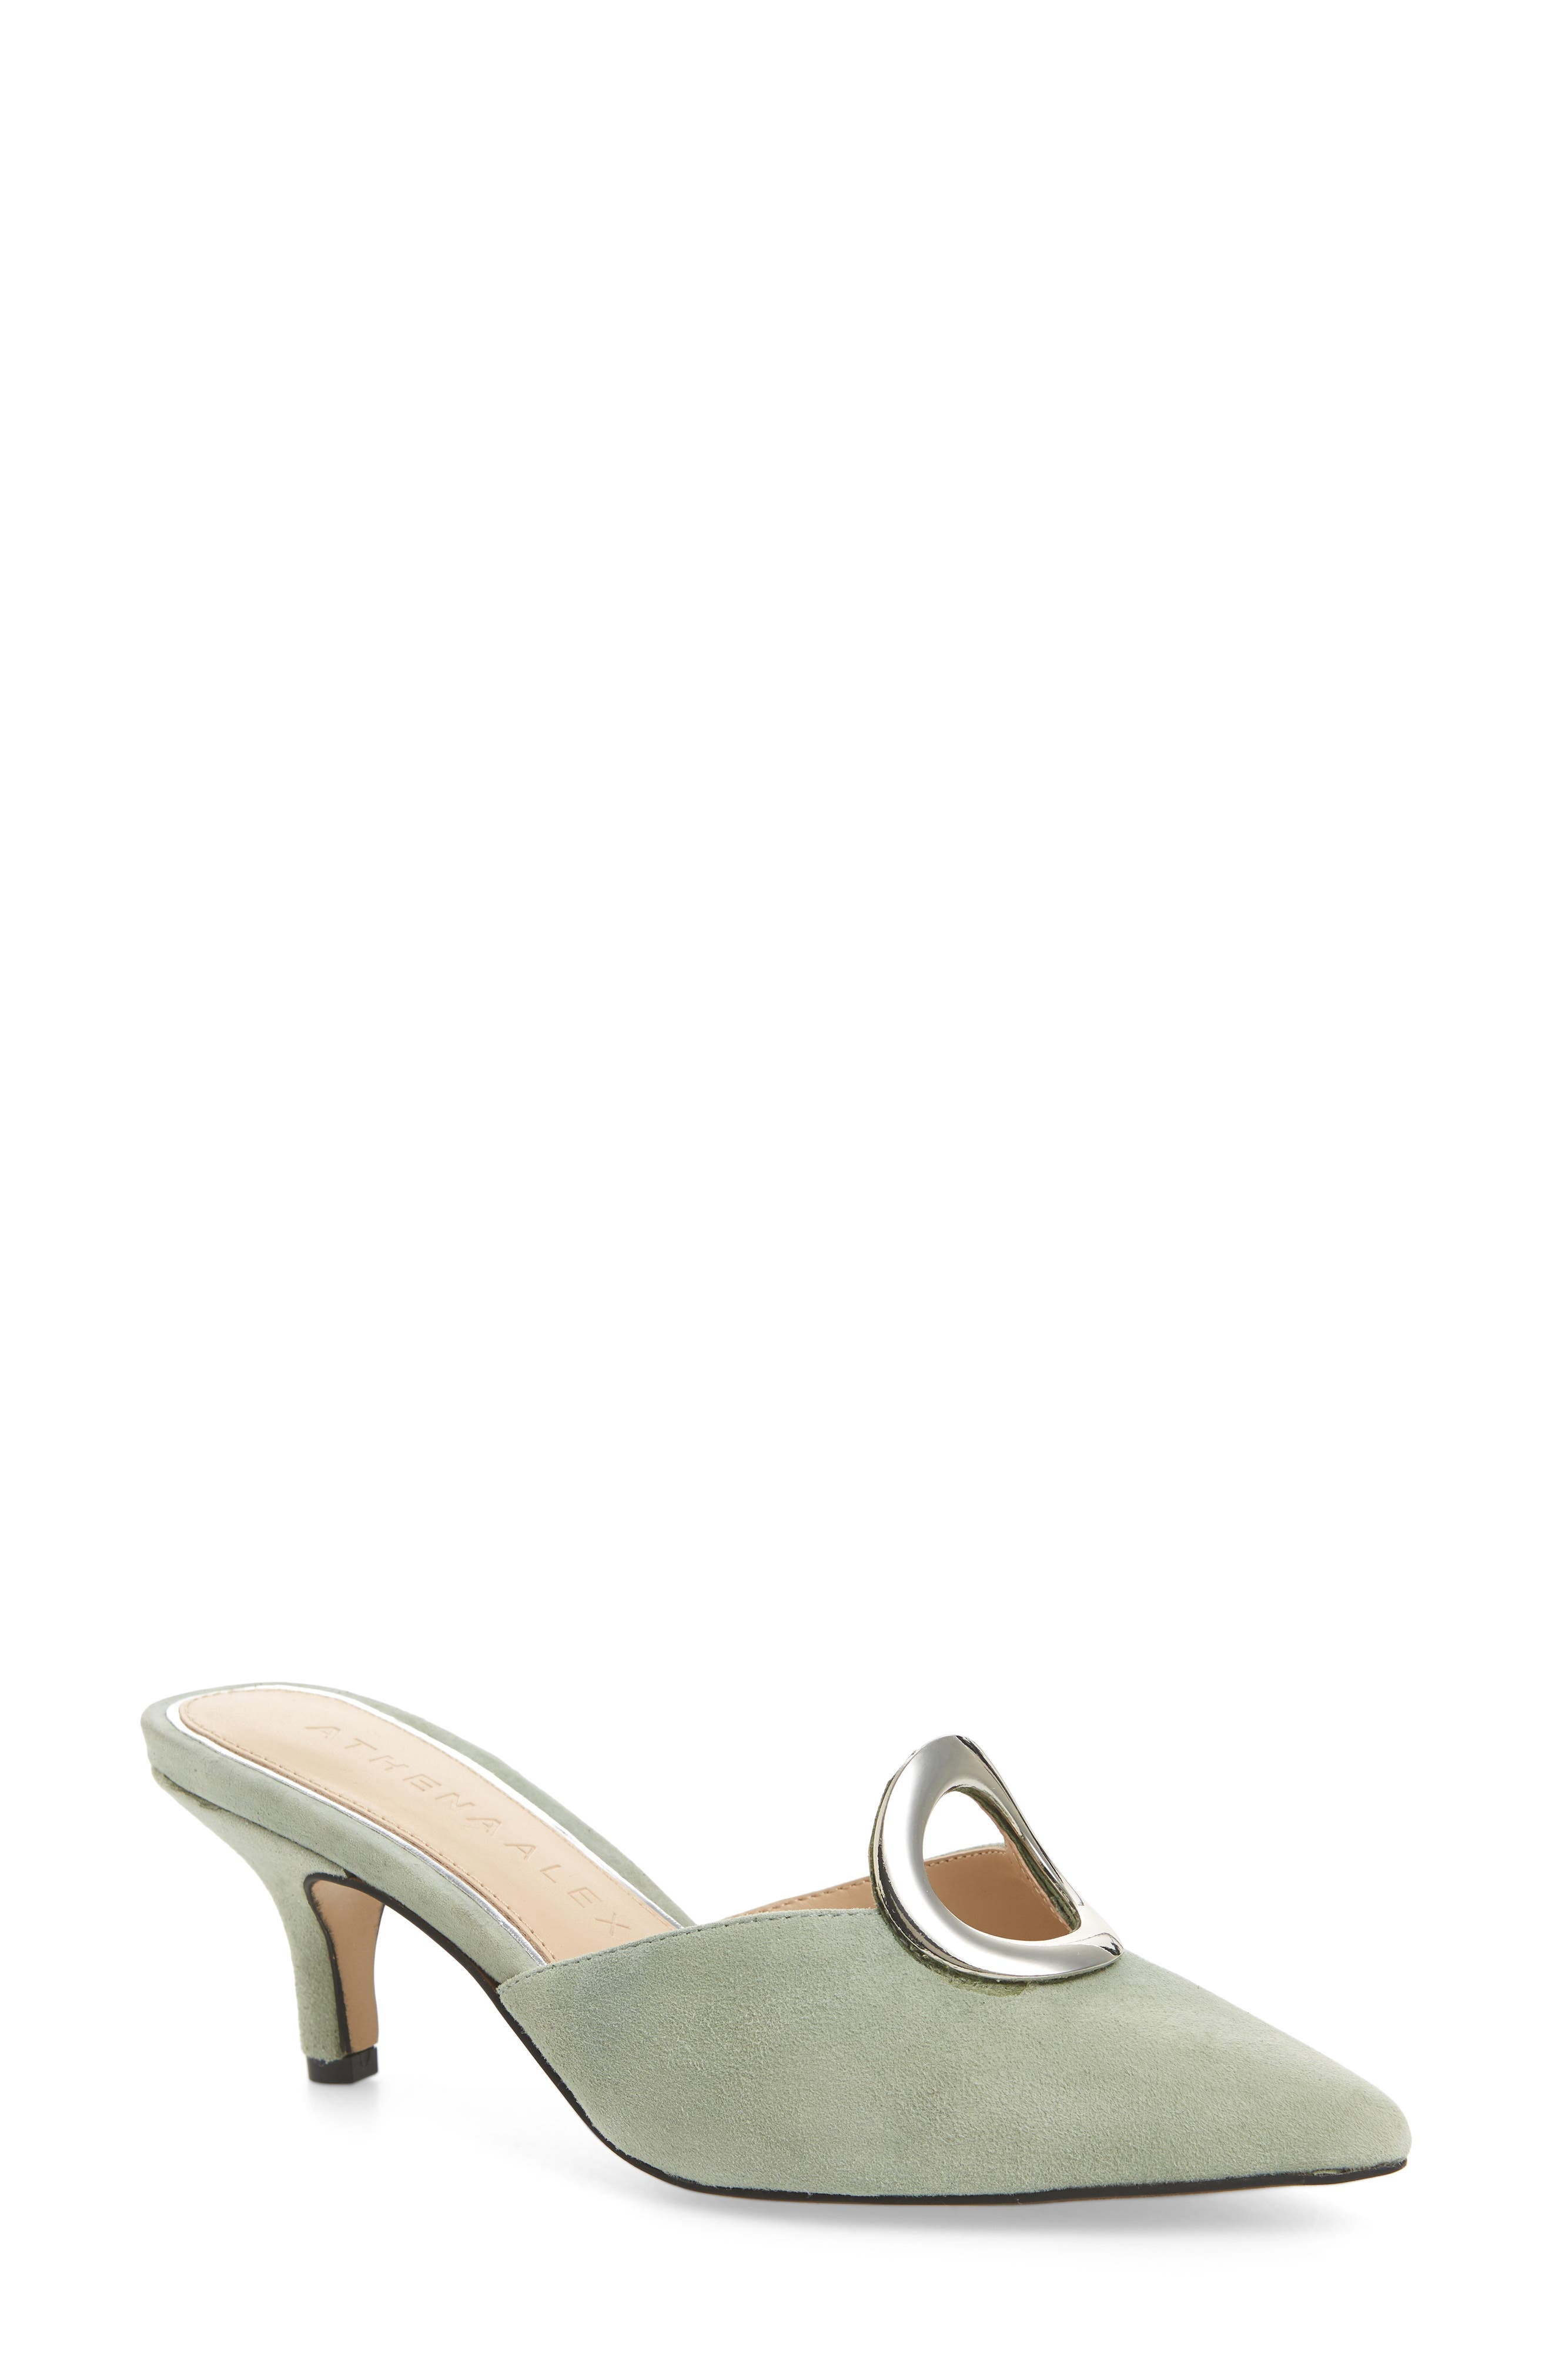 ATHENA ALEXANDER, Pointy Toe Mule, Main thumbnail 1, color, GREEN SUEDE